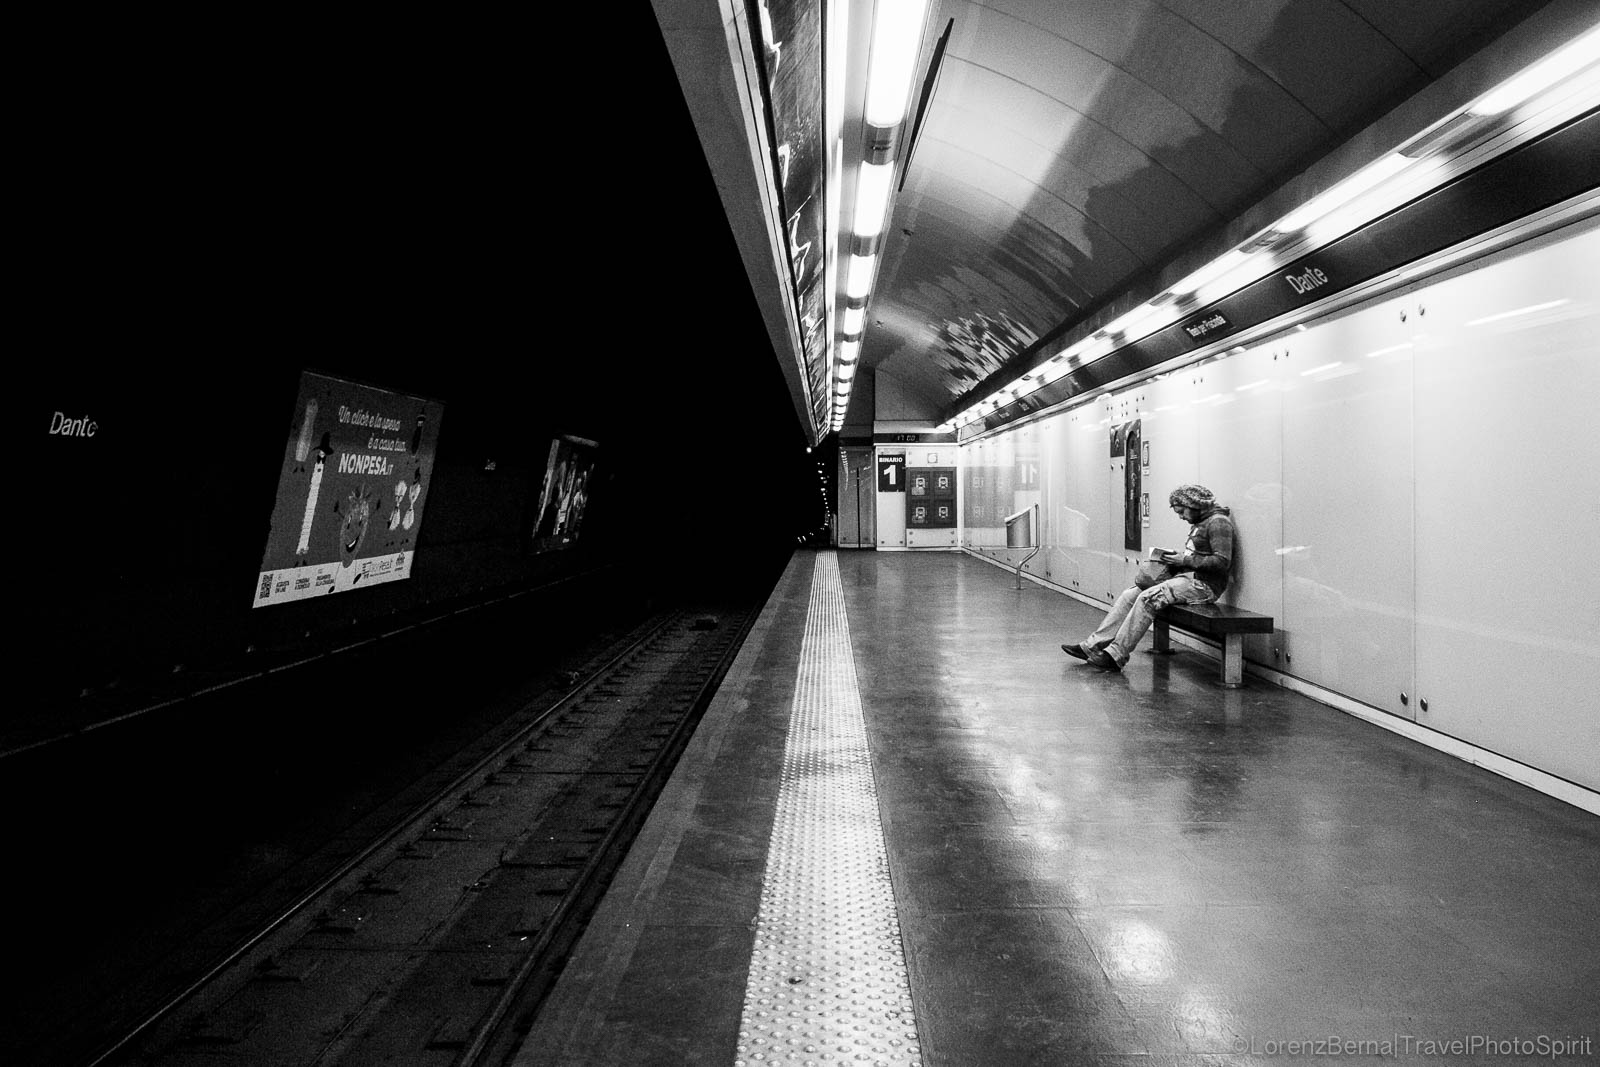 Street Photography in Naples Subway, Italy.